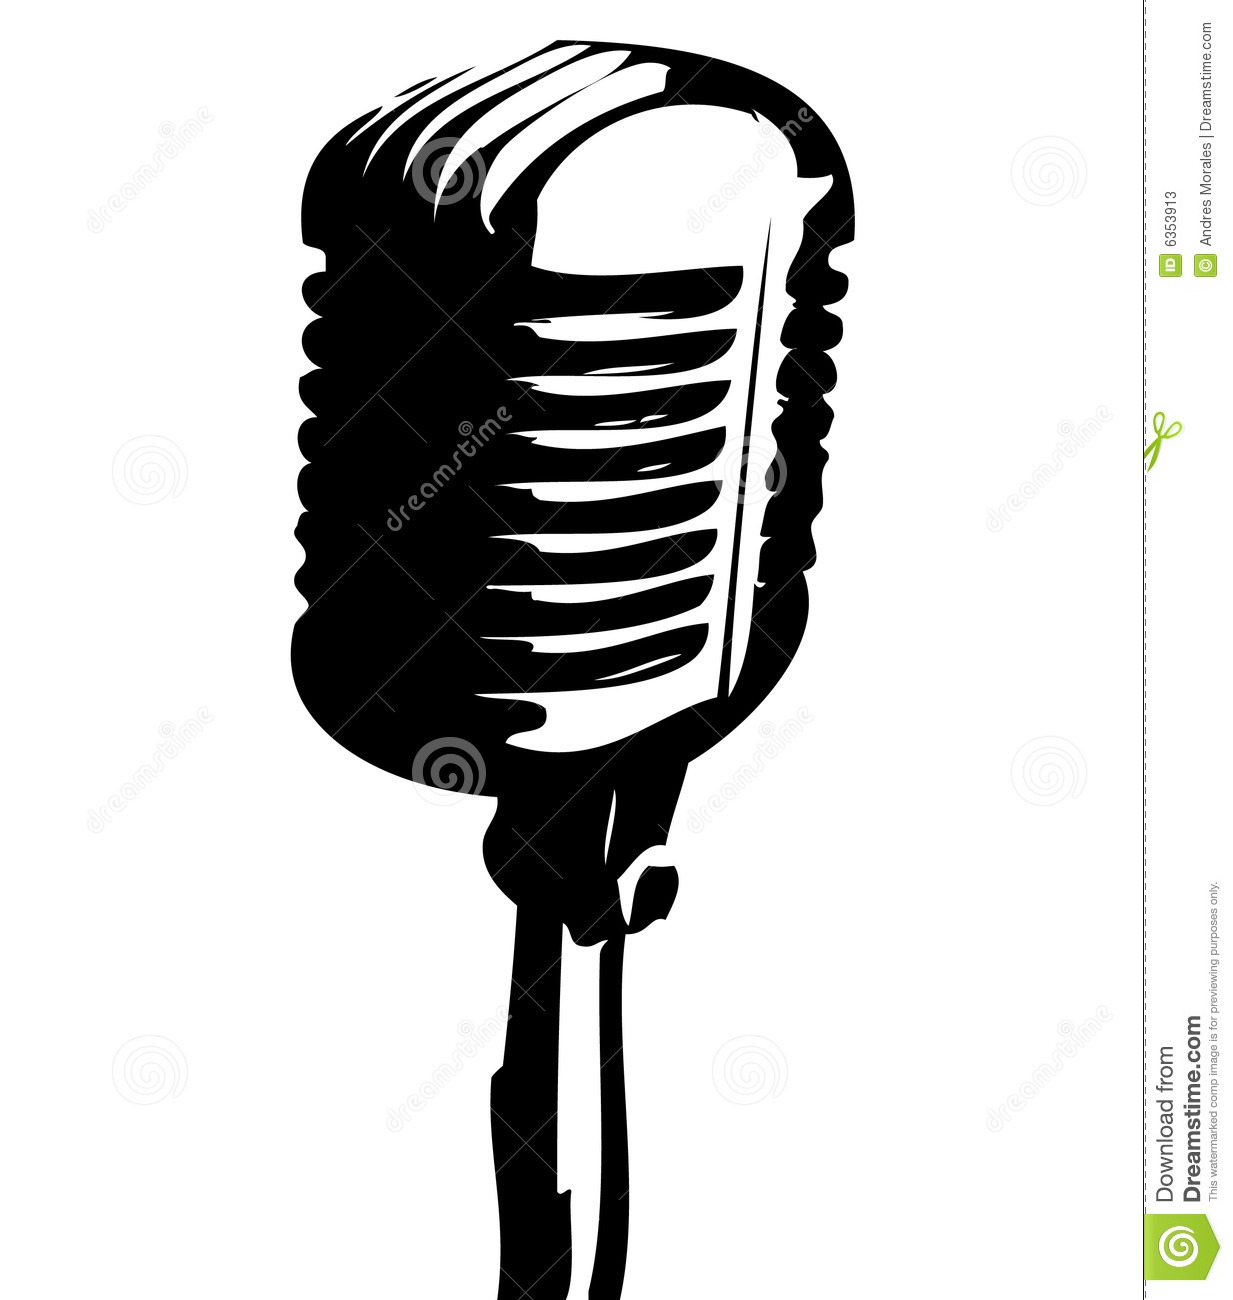 Old Time Microphone By Raqib09 - Microphone Gold Png - Free Transparent PNG  Clipart Images Download